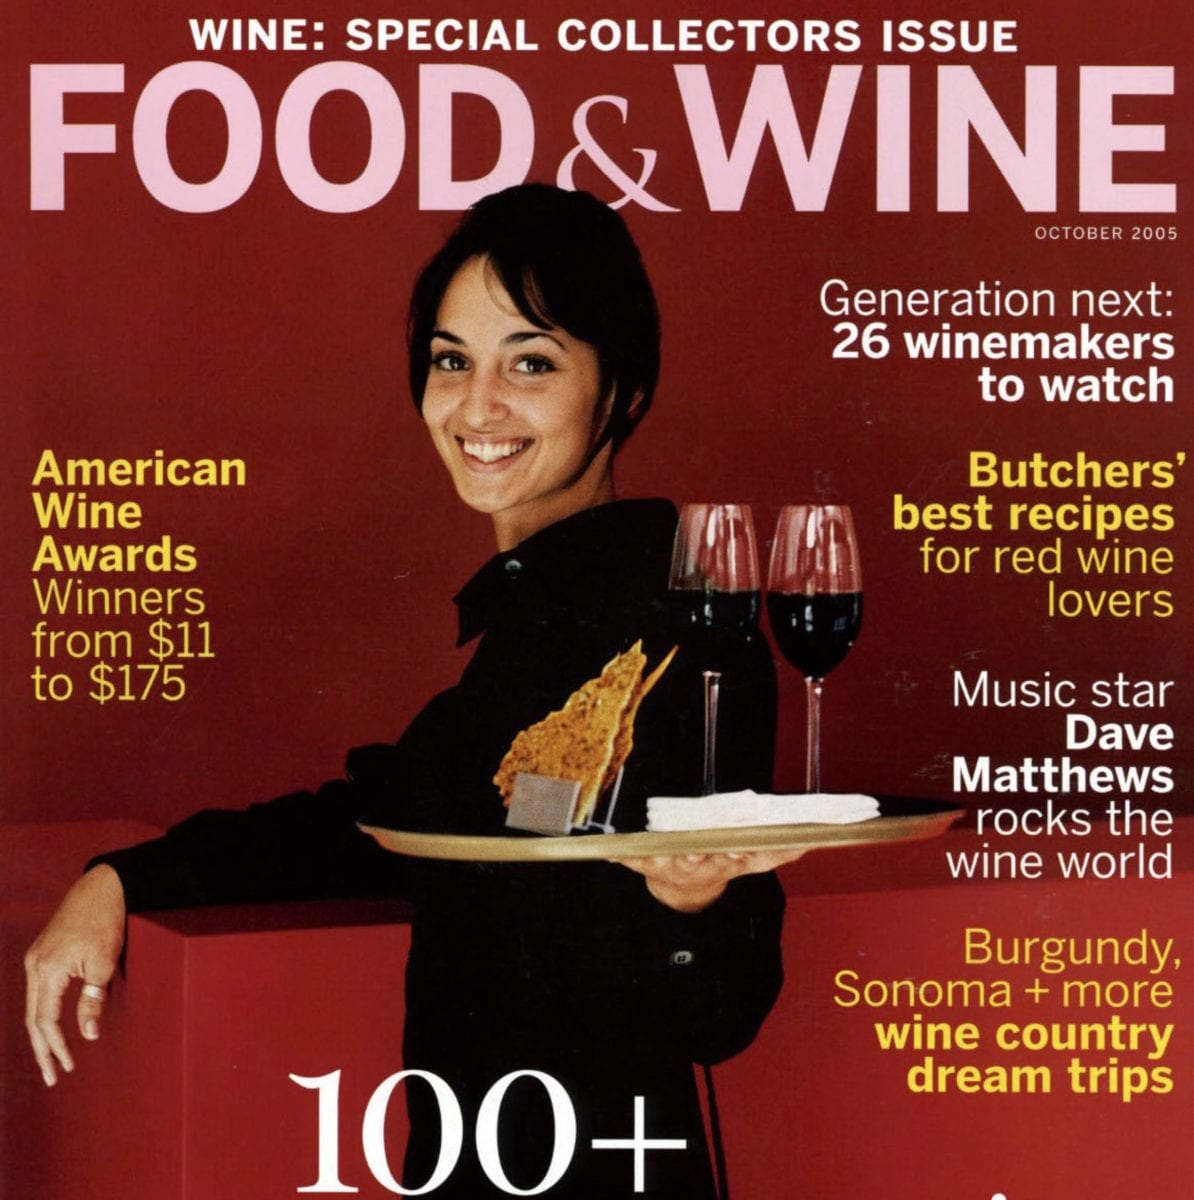 Food & Wine magazine cover.